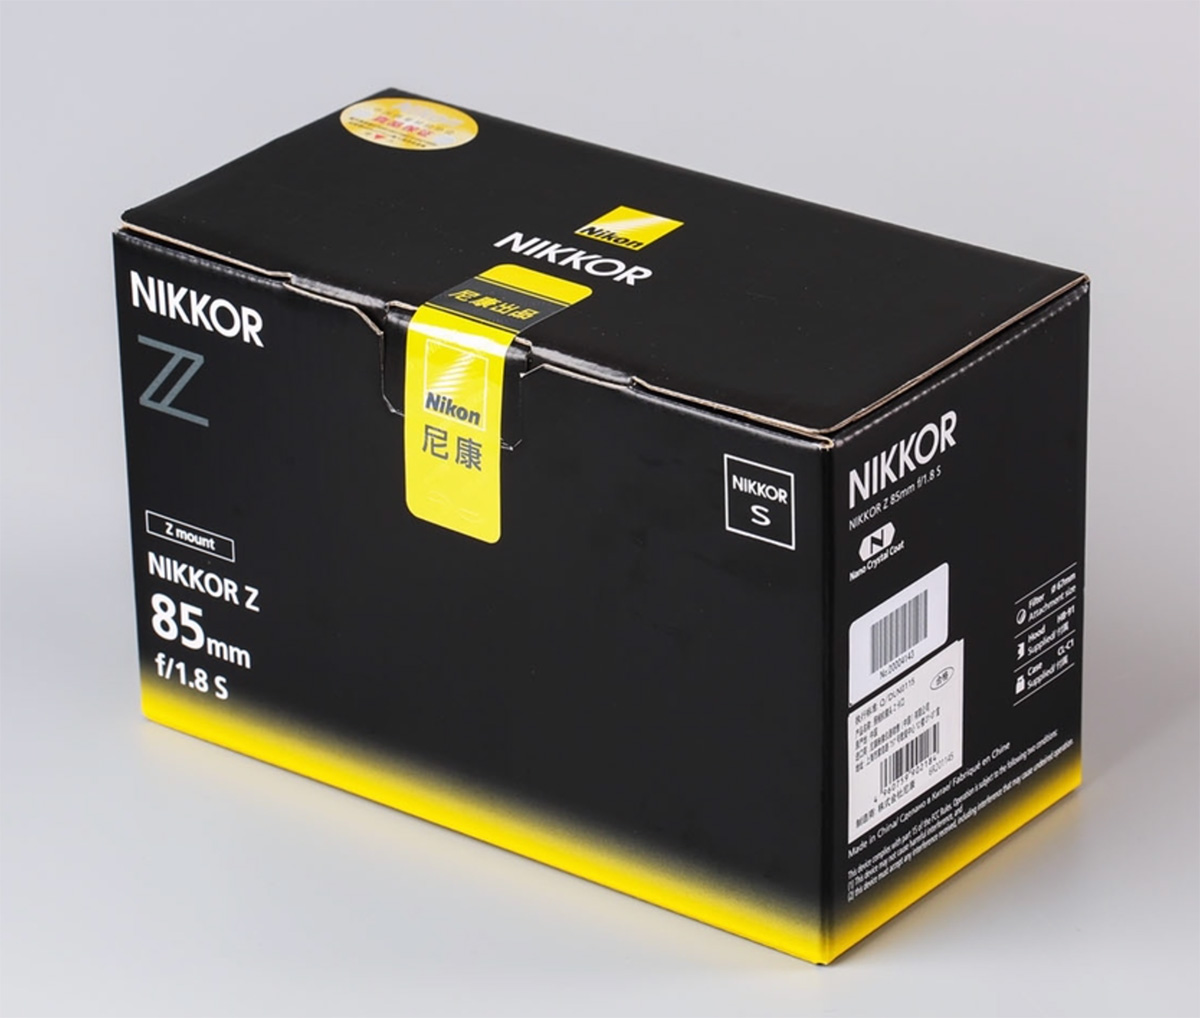 The new Nikon Nikkor Z 85mm f/1 8 S lens is now shipping